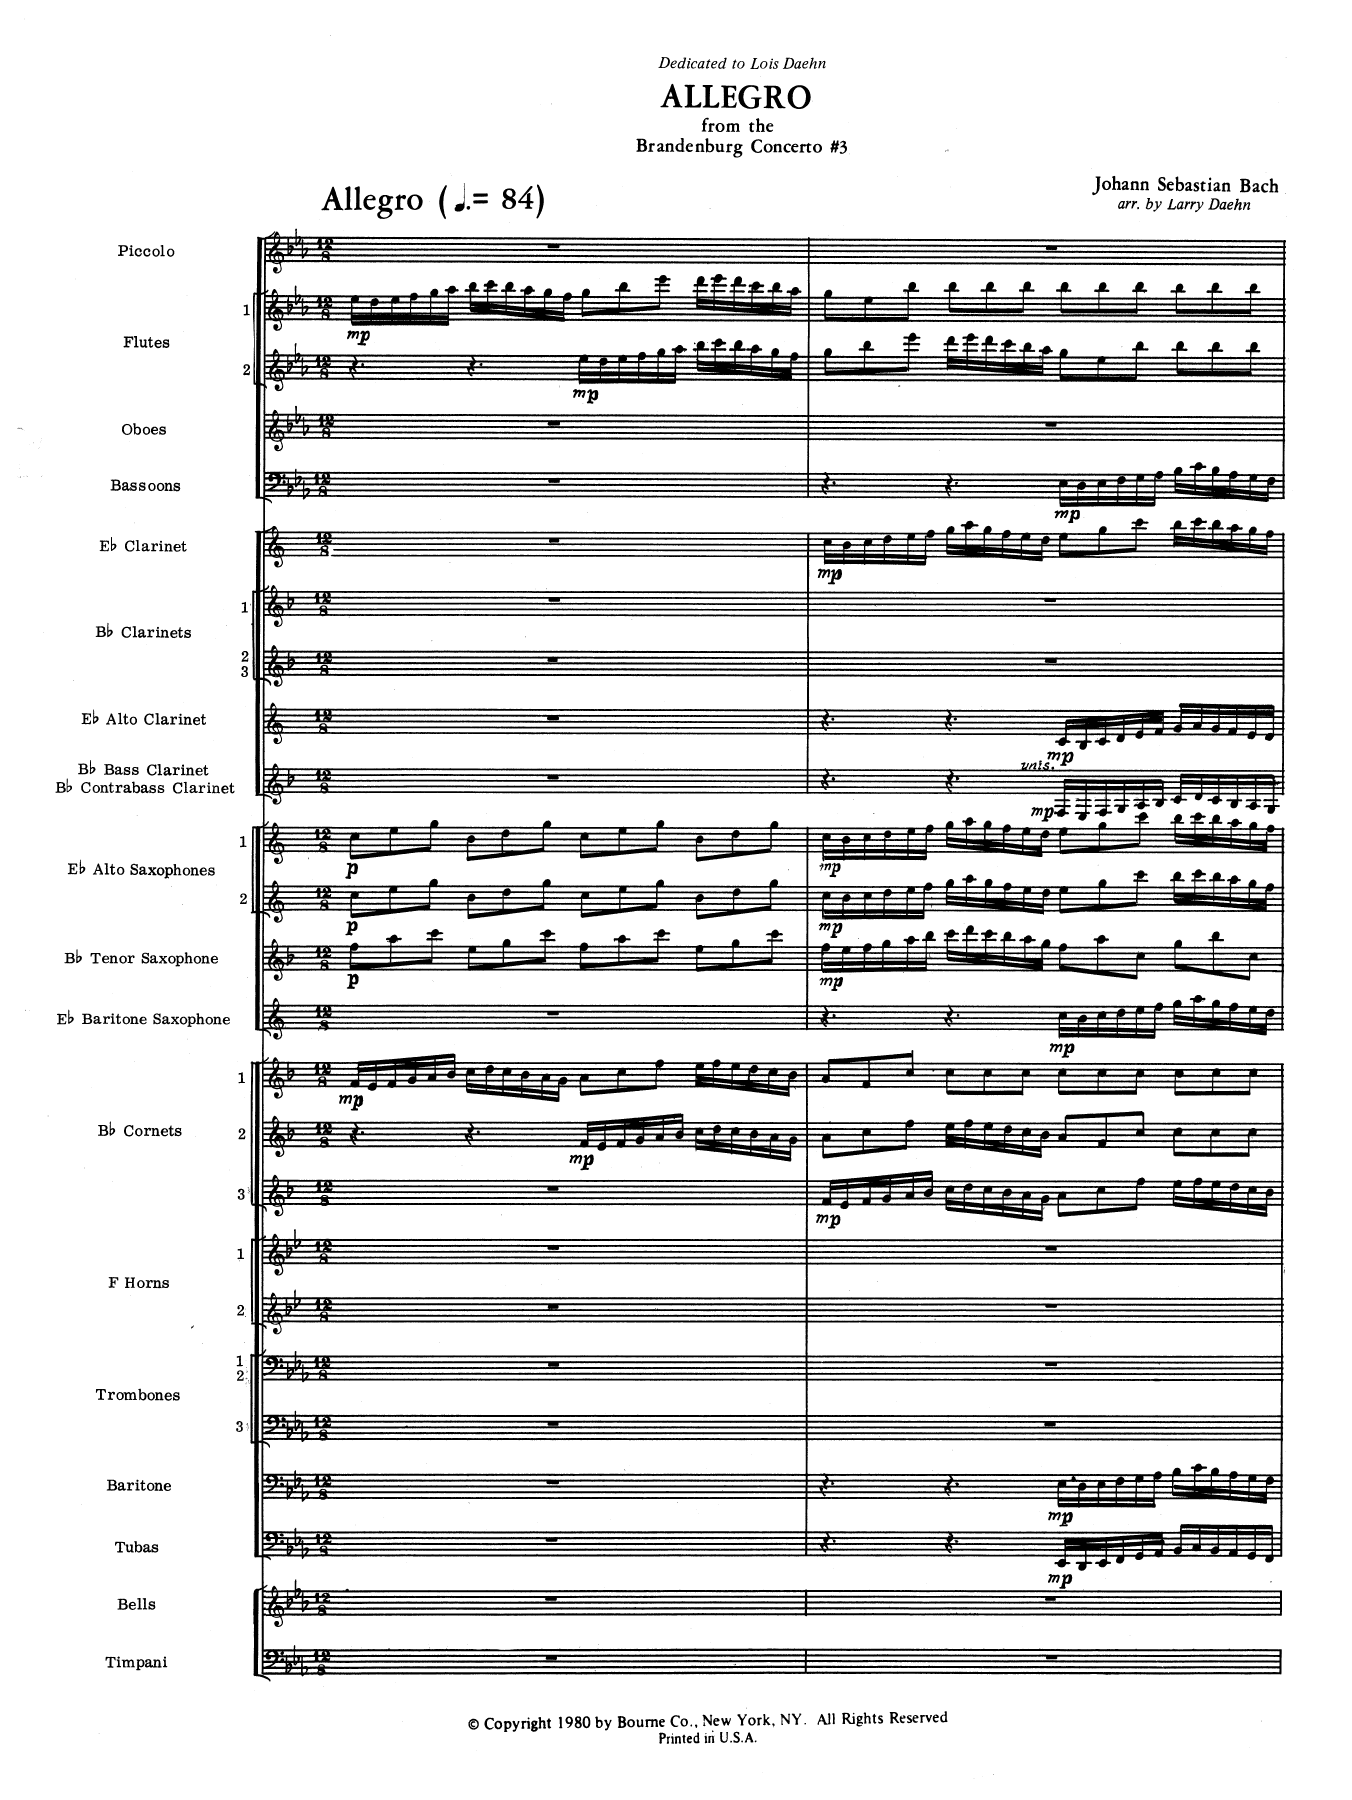 Allegro from Brandenburg Concerto No. 3 (COMPLETE) sheet music for concert band by Larry Daehn